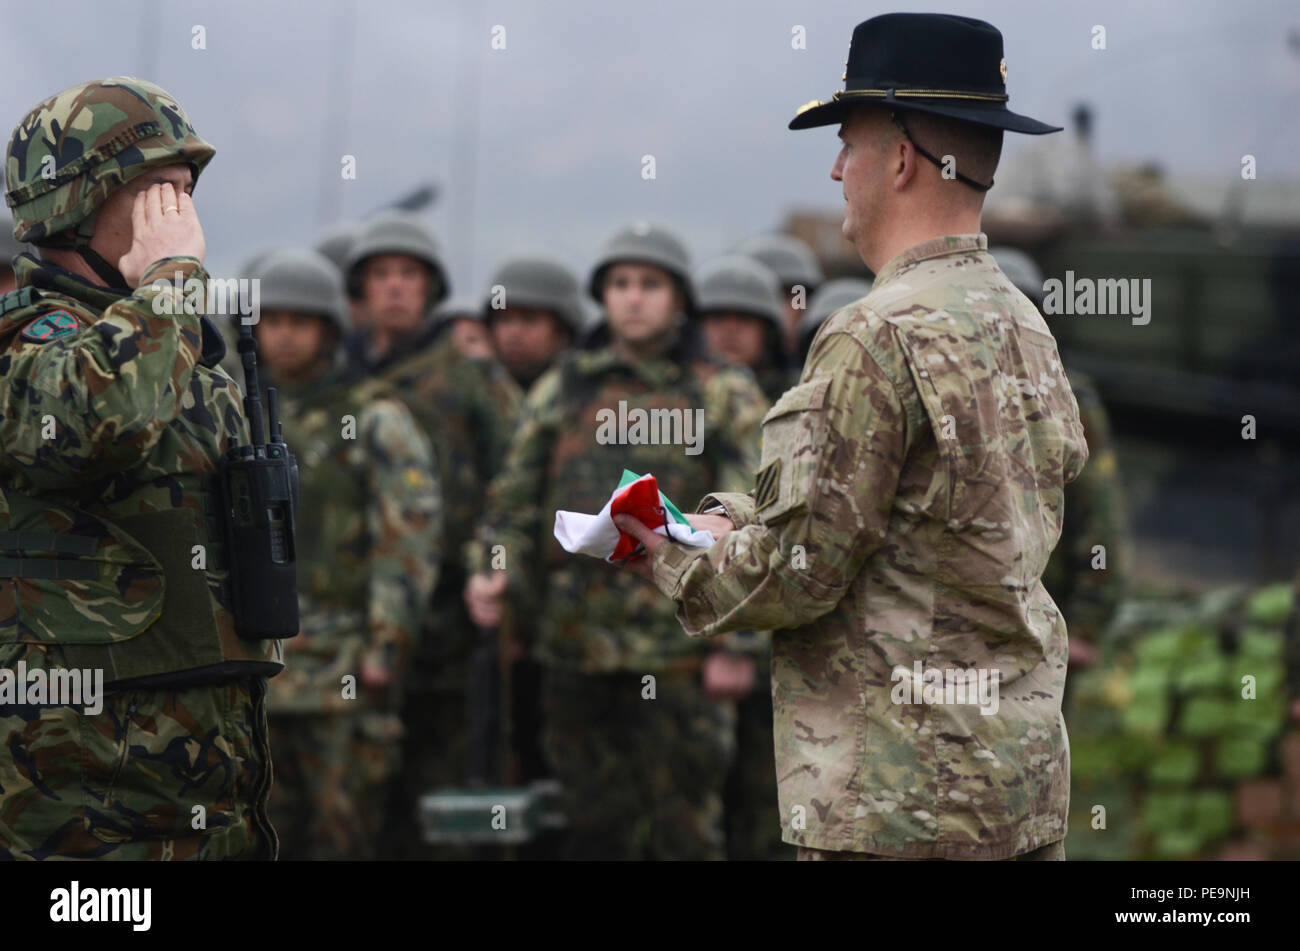 Bulgarian Lt. Col. Tzvetan Kochankov (left), commander of 1-61st Mechanized Battalion, salutes after handing off the Bulgarian flag to U.S. Army Lt. Col. Christopher Mahaffey (right), the commander of 5th Squadron, 7th Cavalry Regiment, 3rd Infantry Division, stationed at Fort Stewart, Ga., during the closing ceremony of Exercise Peace Sentinel at Novo Selo Training Center, Bulgaria, Nov. 24, 2015. (U.S. Army photo by Staff Sgt. Steven M. Colvin/Released) - Stock Image